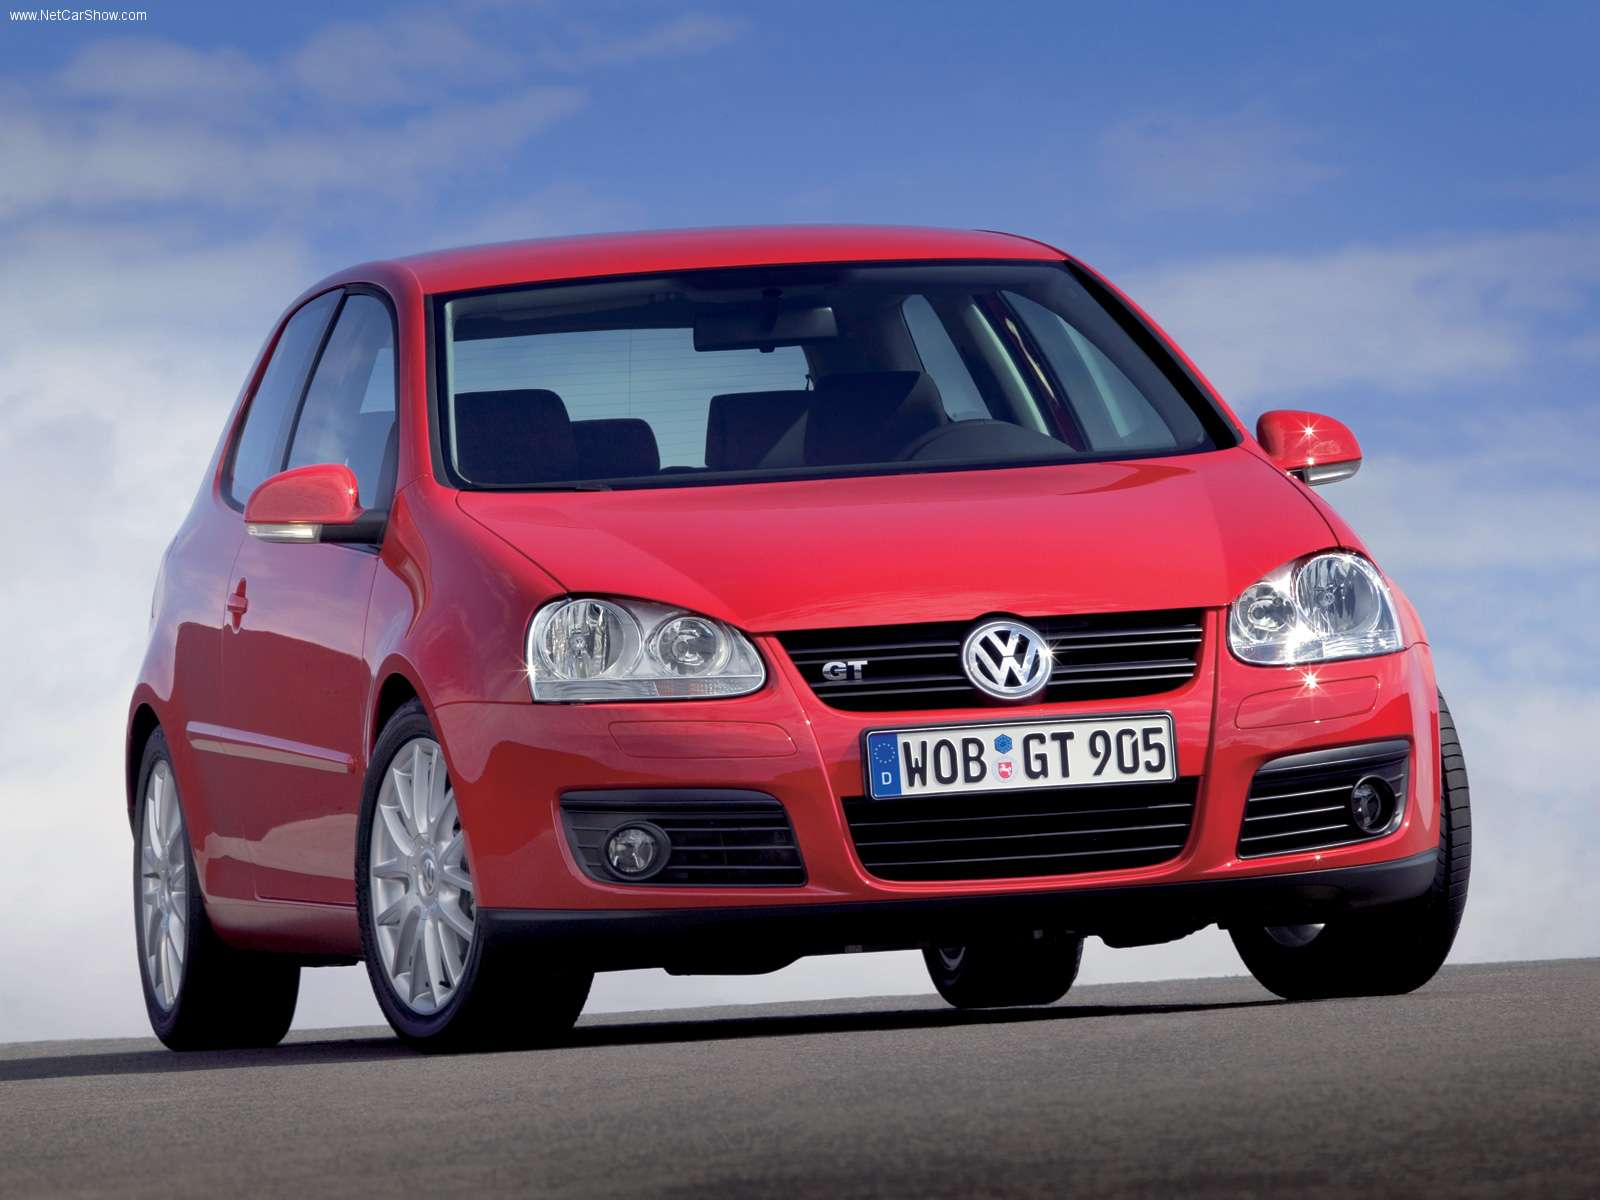 volkswagen golf gt photos photogallery with 13 pics. Black Bedroom Furniture Sets. Home Design Ideas